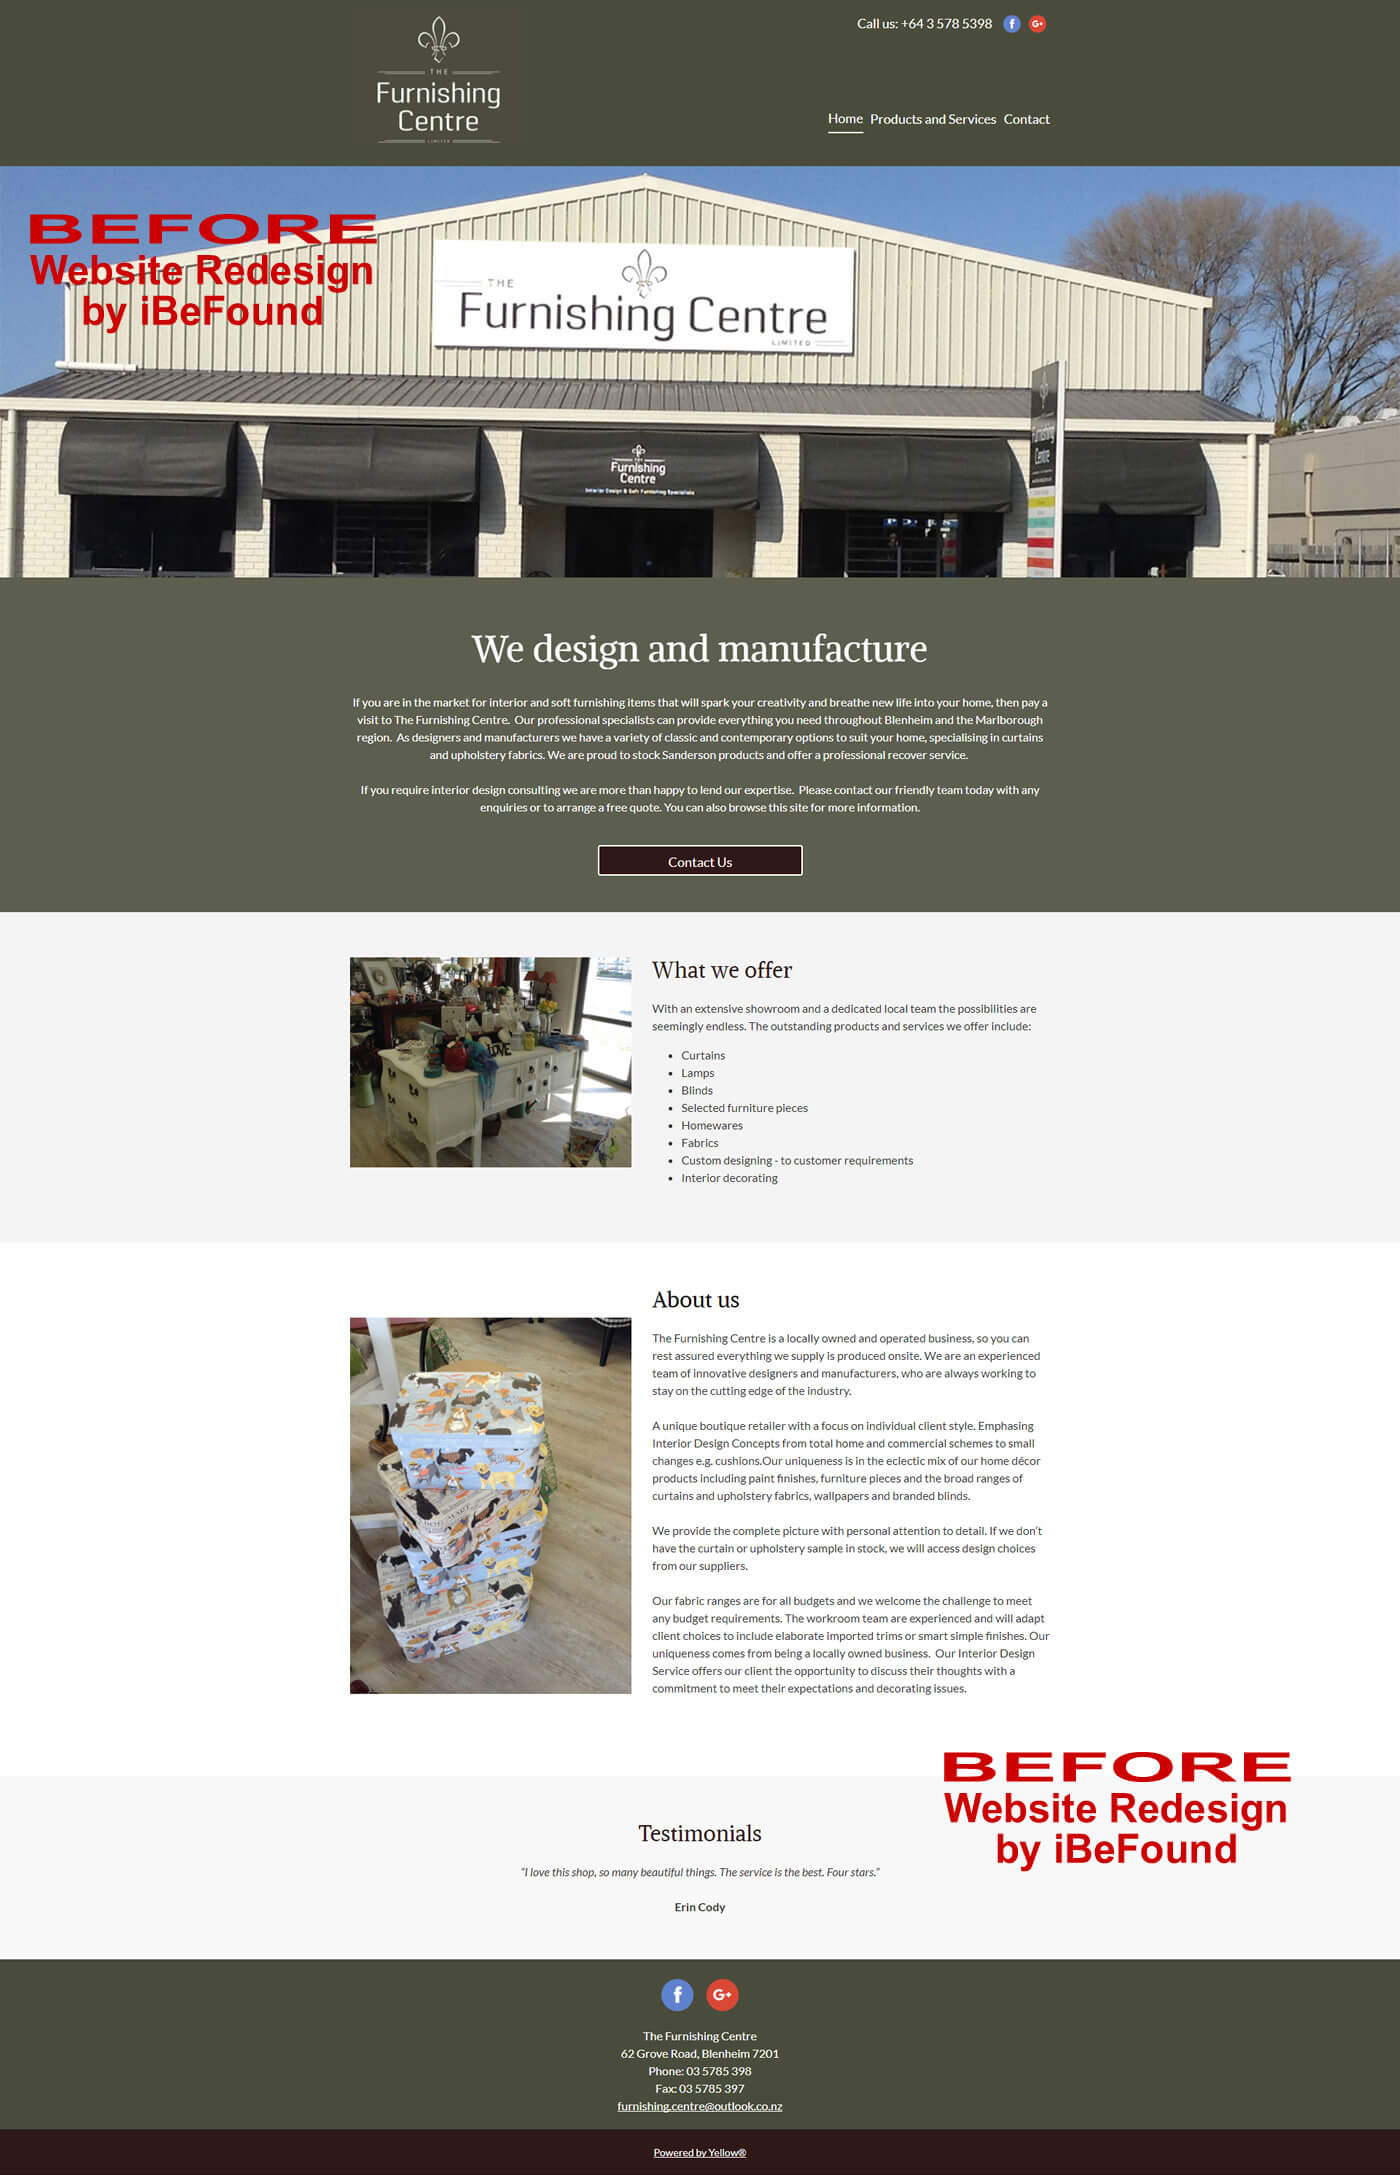 Homepage Of The Furnishing Centre Before Website Redesign By IBeFound Digital Marketing Division